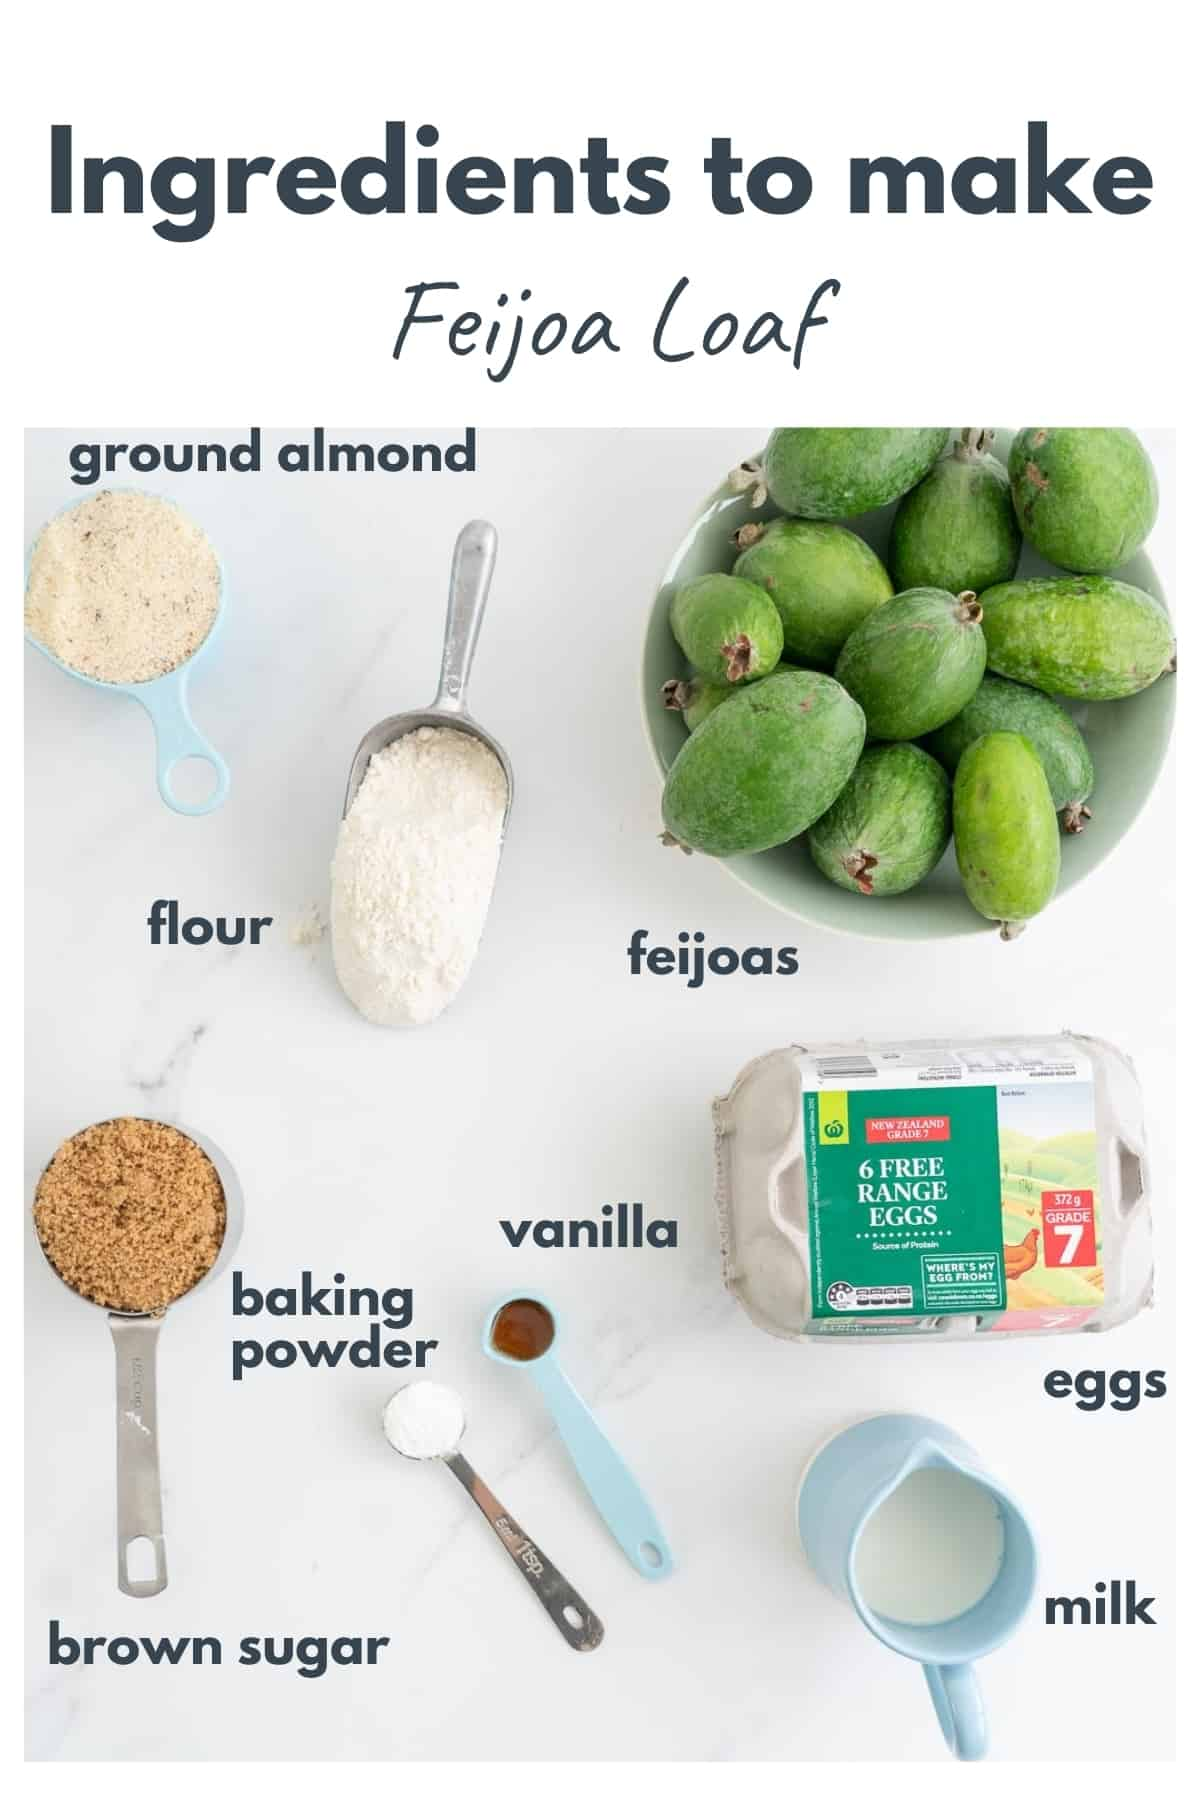 The ingredients to make feijoa loaf spread out on a bench top with text overlya.